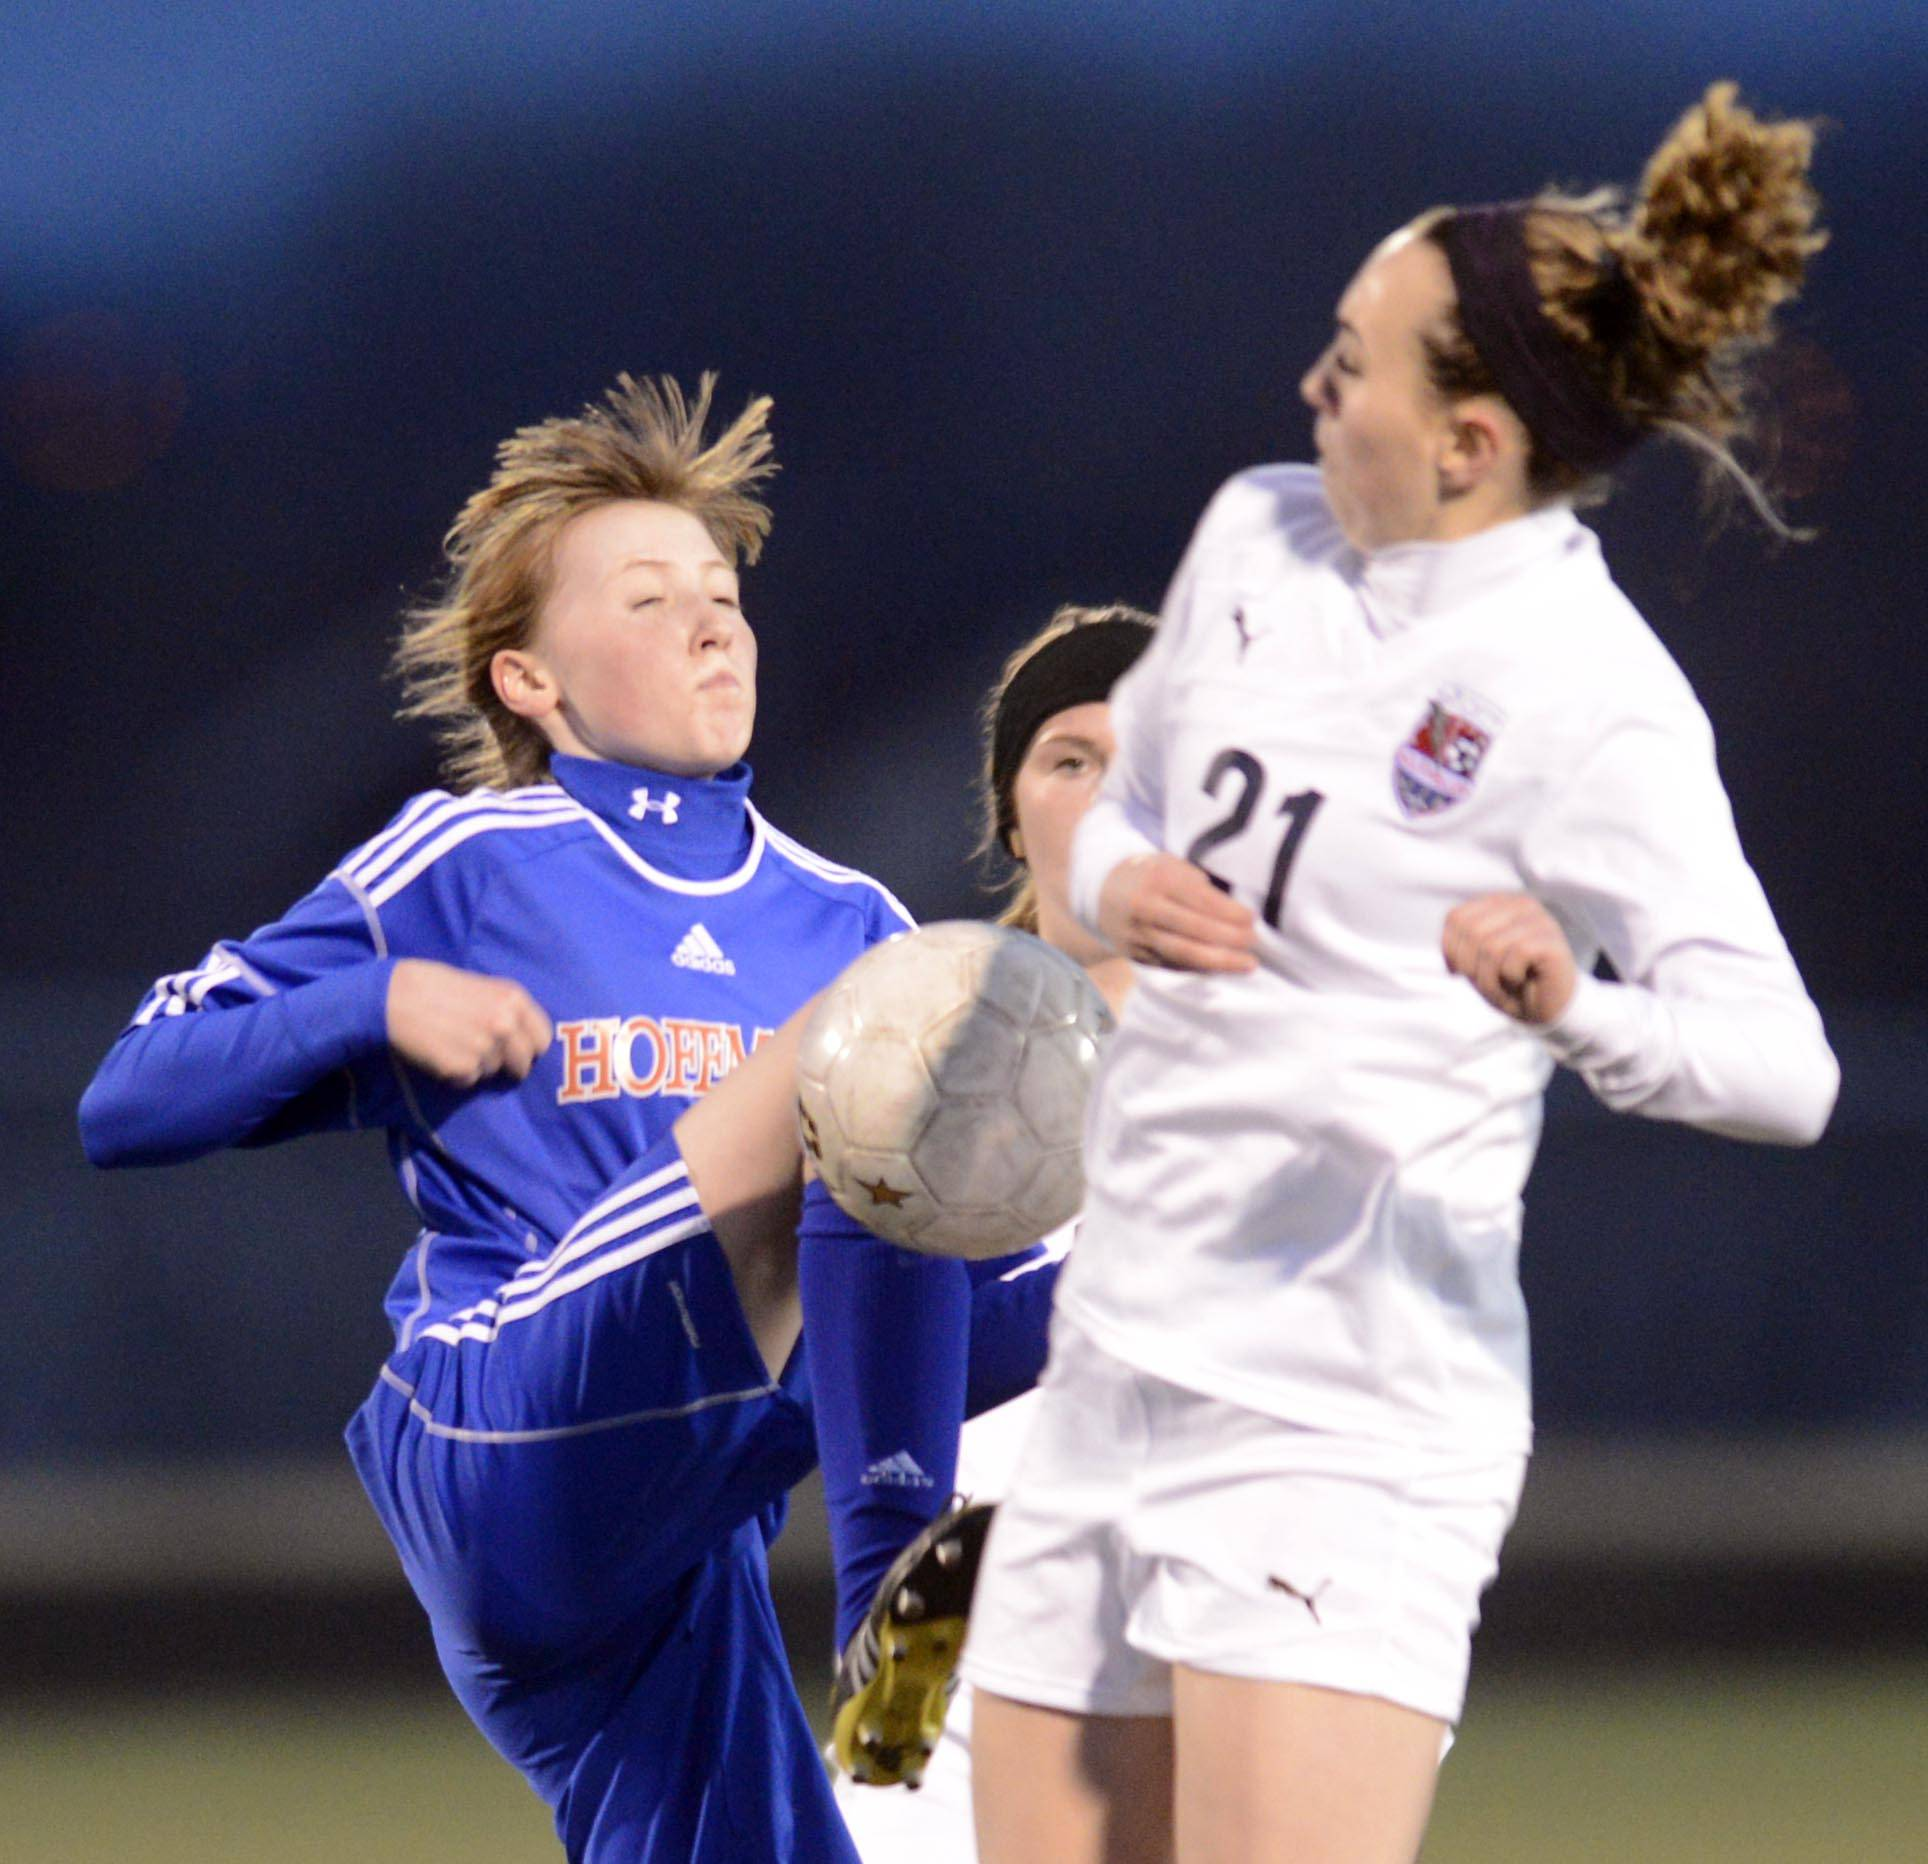 South Elgin's Julie Greco and Hoffman Estates' Erin Hanson compete for the ball Thursday at Millennium Field in Streamwood.